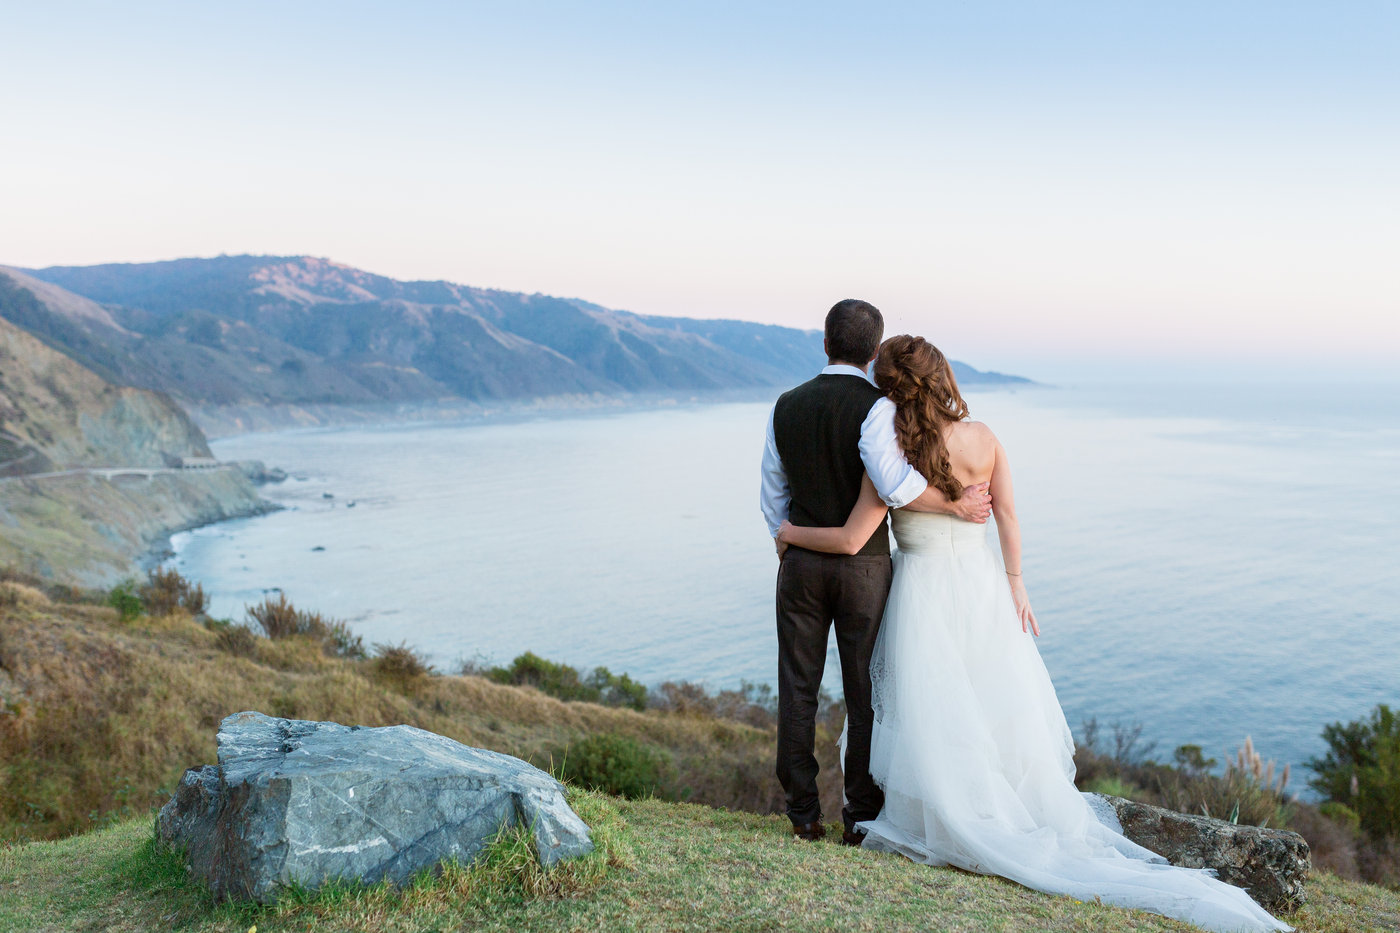 point-16-big-sur-california-wedding-photographer.jpg